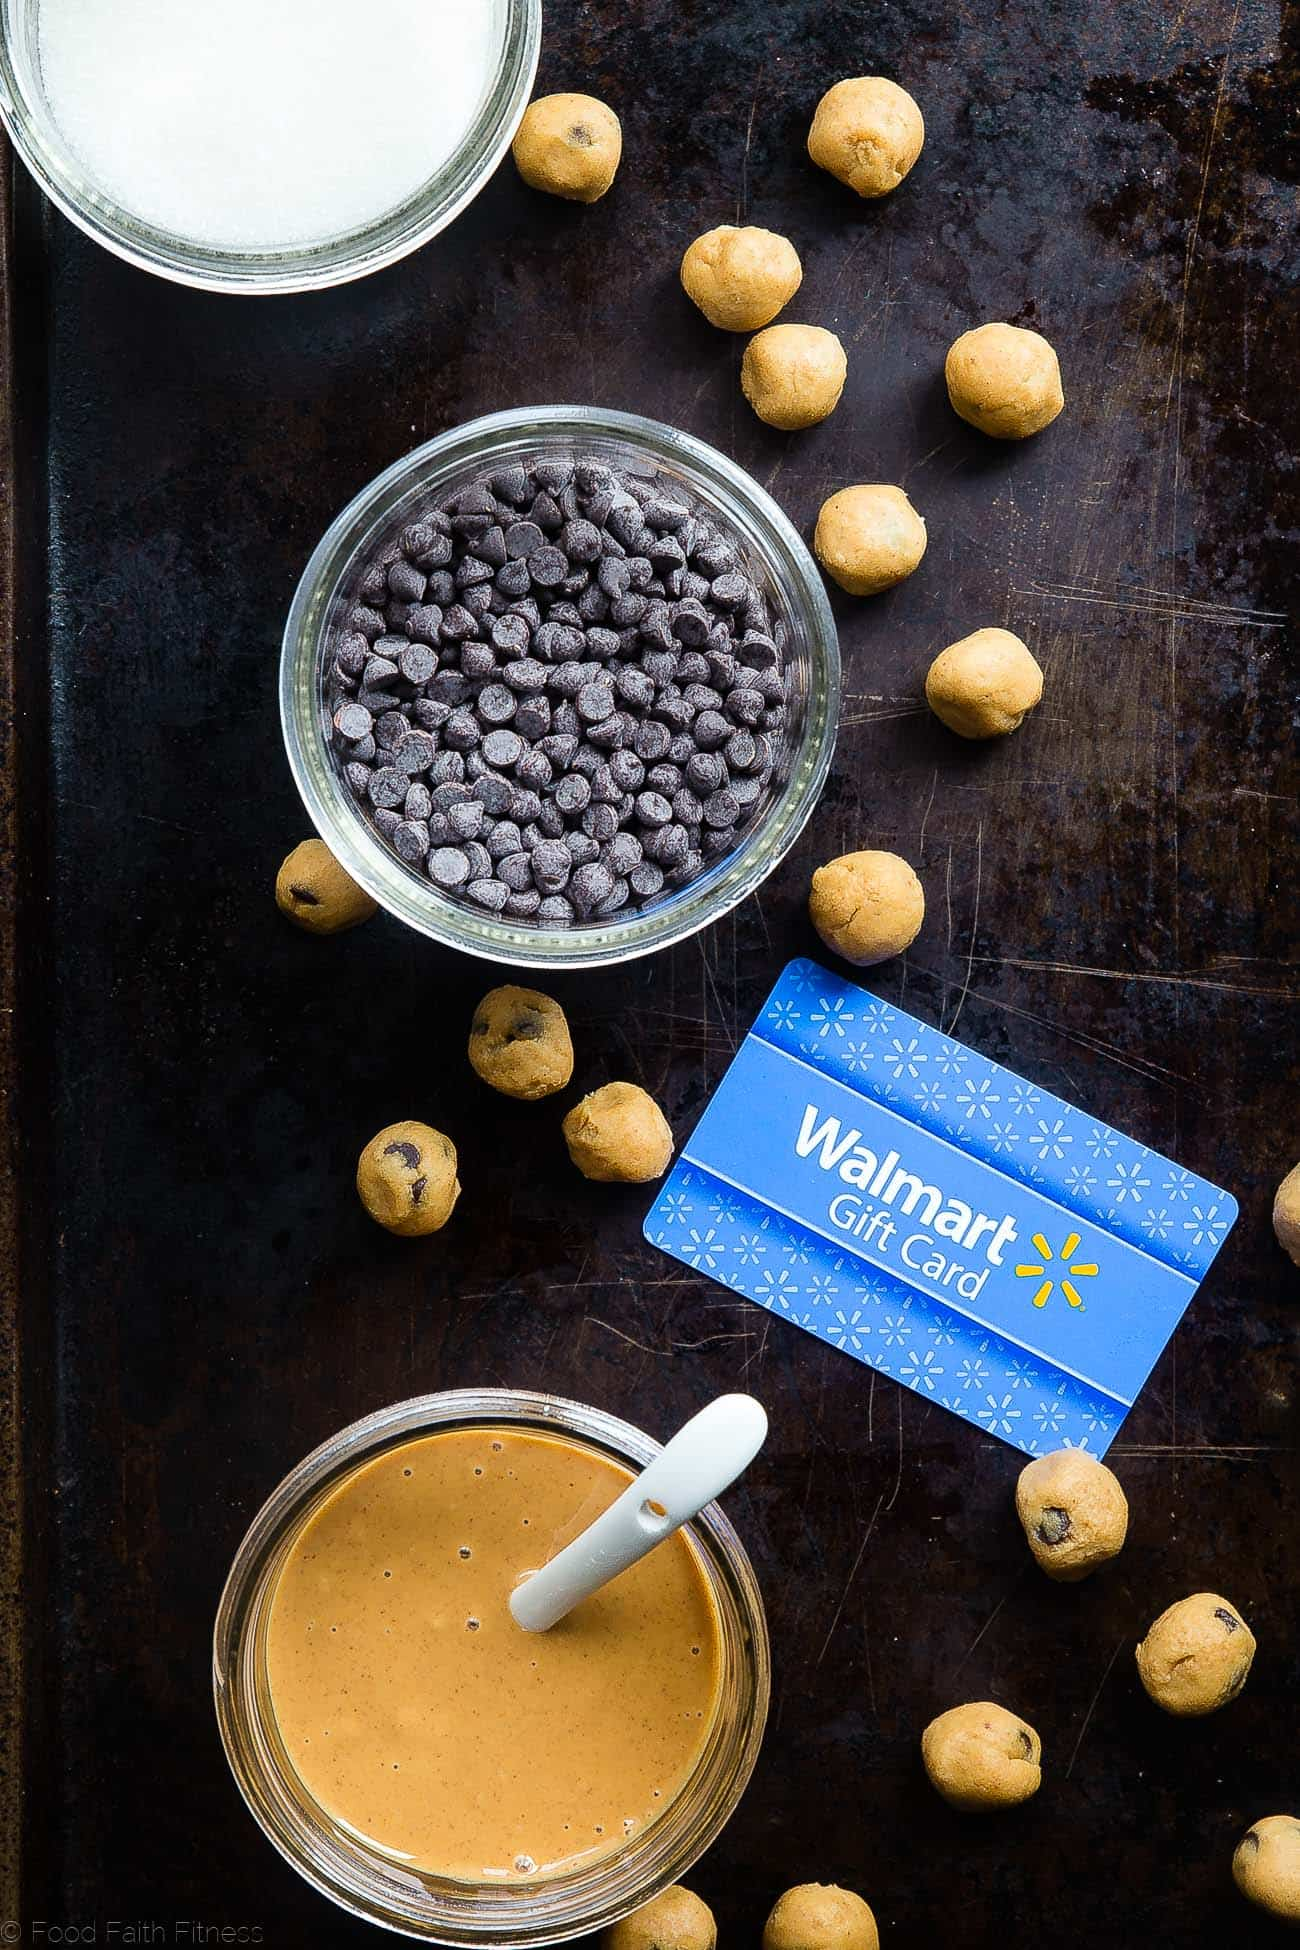 Photo of Walmart card, peanut butter and chocolate chips. Recipe on Foodfaithfitness.com